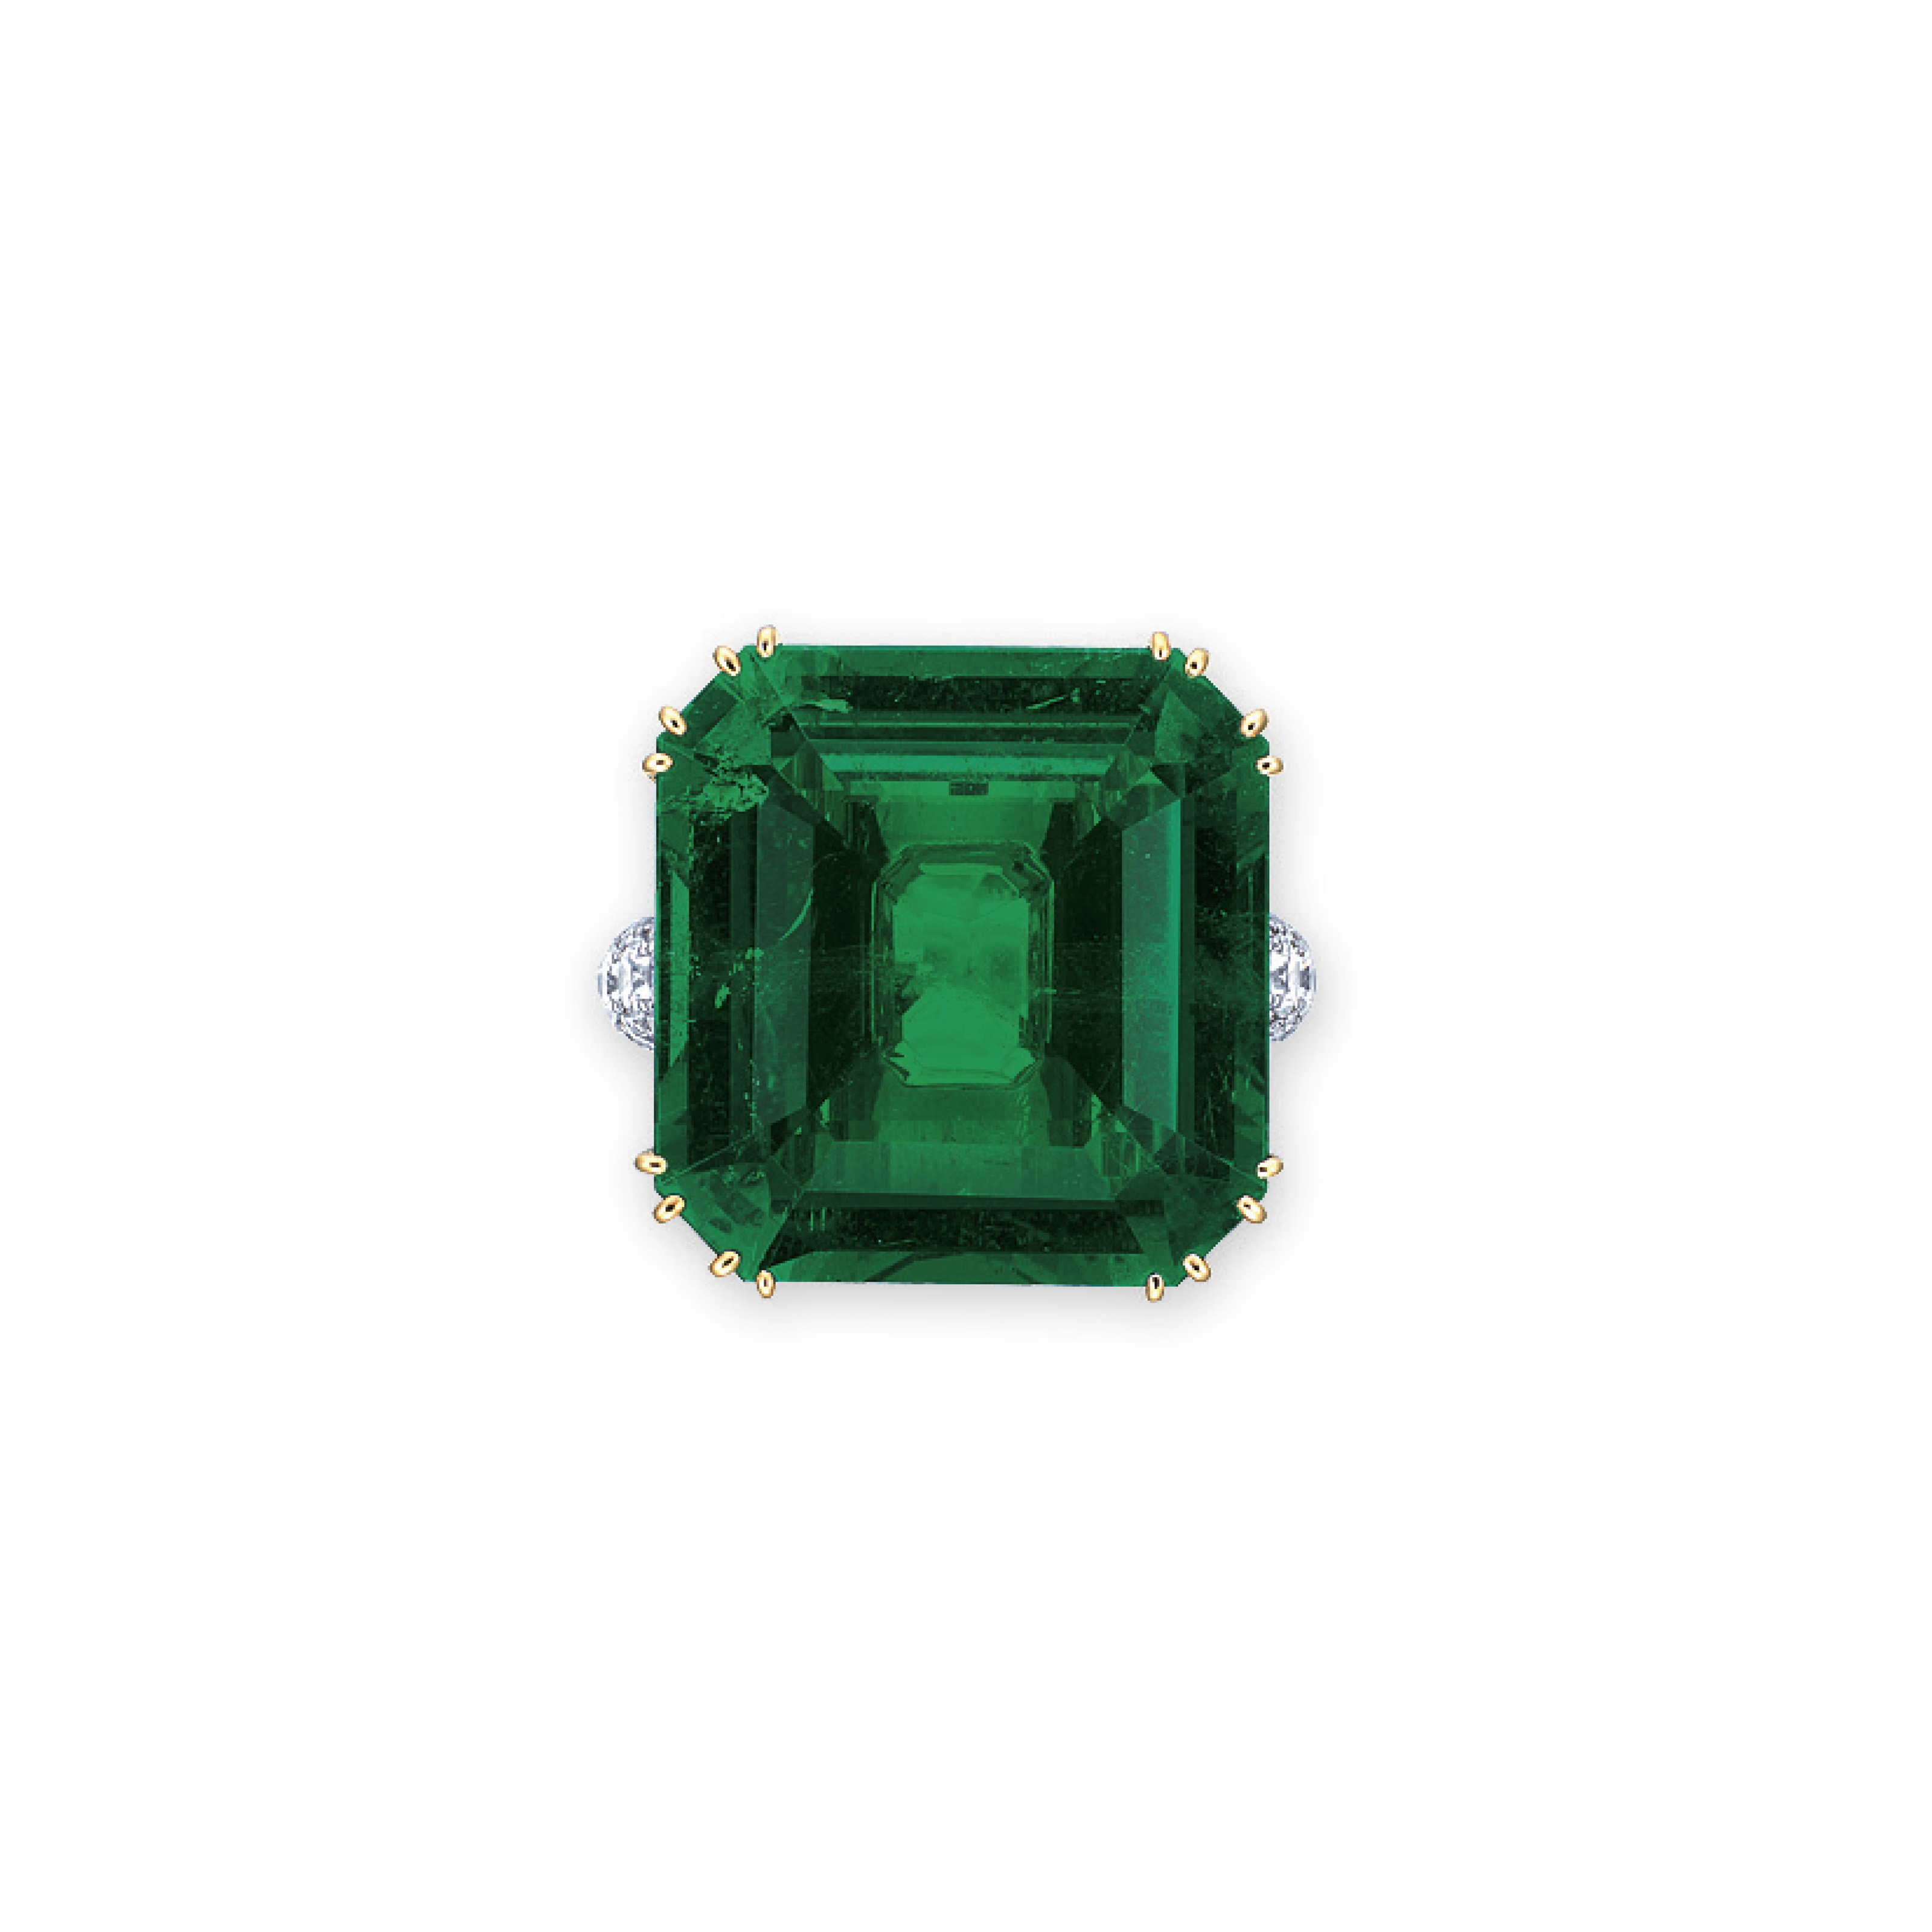 AN EXCEPTIONAL EMERALD AND DIAMOND RING, BY GIMEL